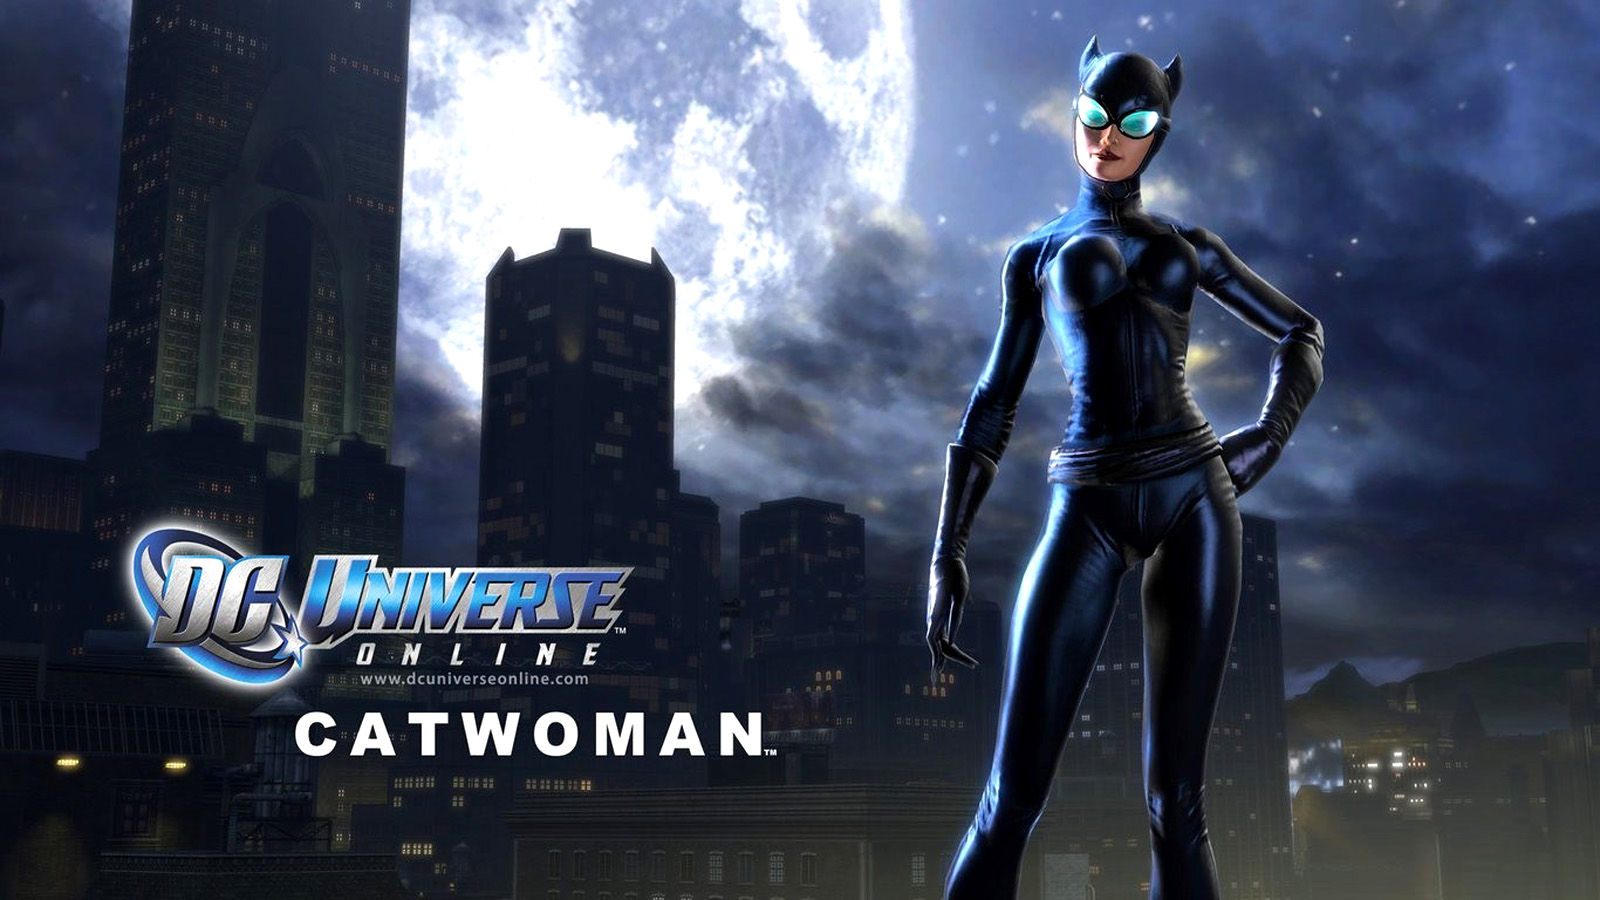 Catwoman DC Universe Online Wallpapers